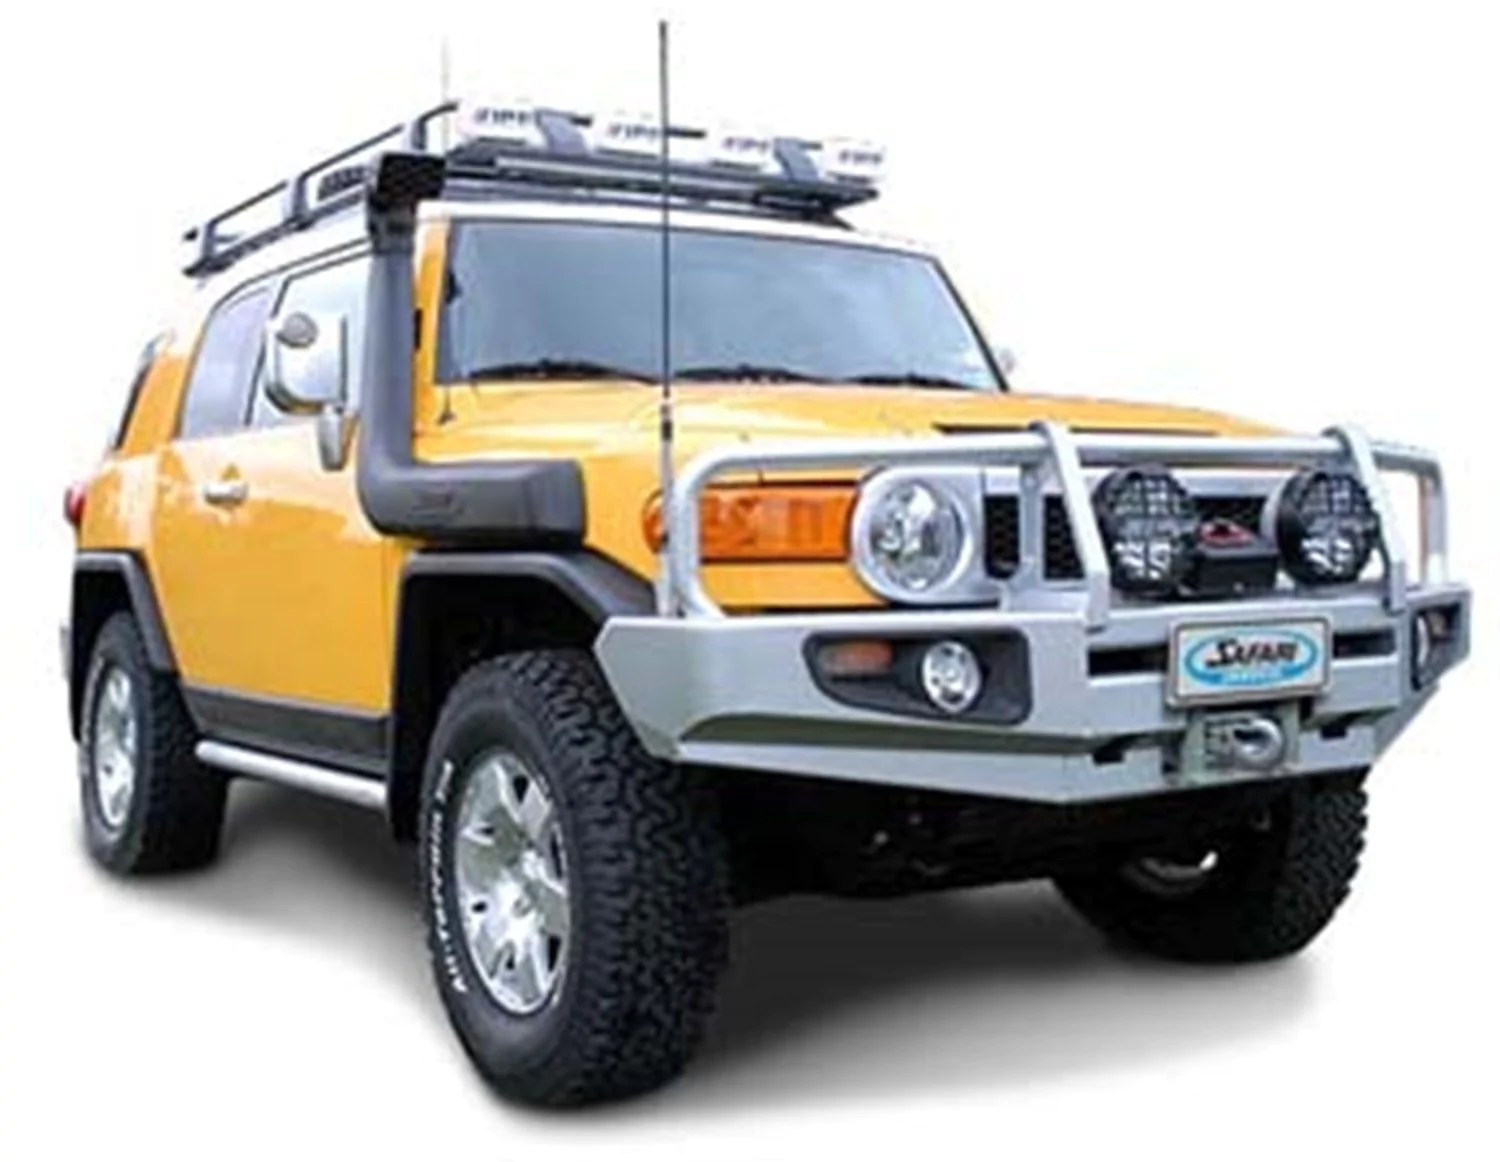 medium resolution of arb safari snorkel fj cruiser 2010 2014